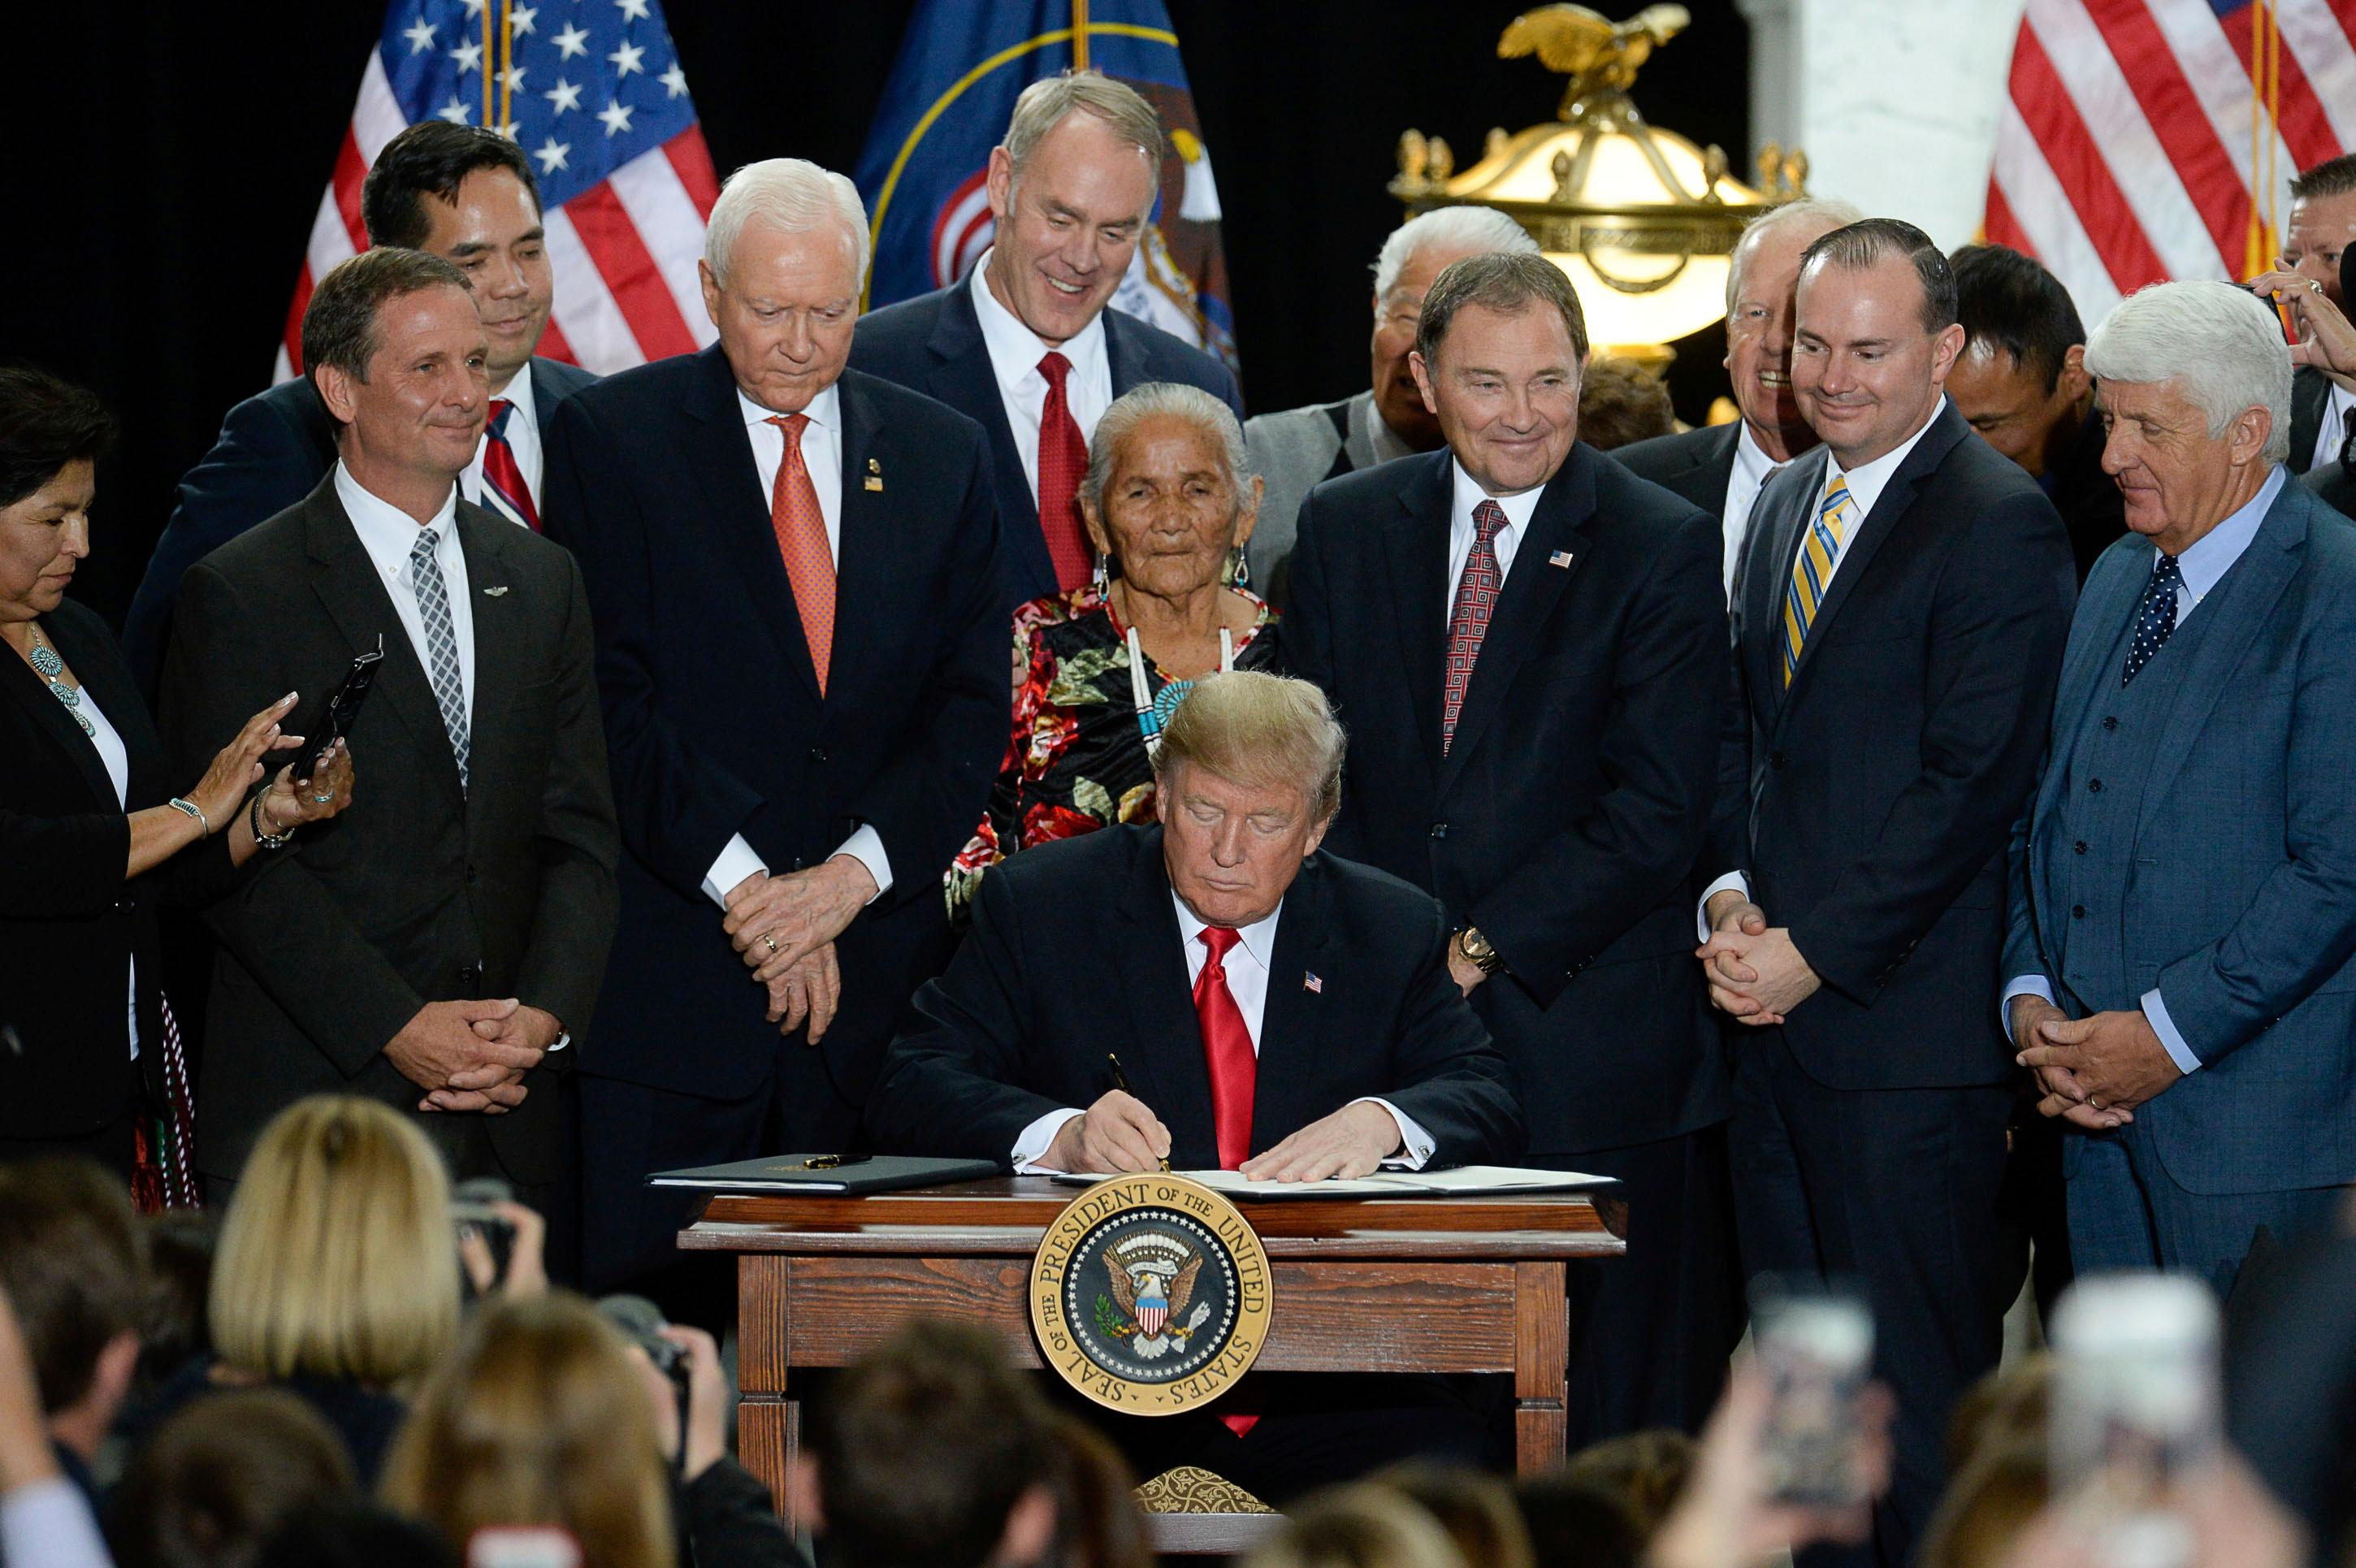 President Donald Trump is surrounded by Utah representatives at the Utah Capitol on Monday, Dec. 4, 2017, as he signs two presidential proclamations to shrink Bears Ears and Grand Staircase-Escalante national monuments.  (Francisco Kjolseth/The Salt Lake Tribune via AP)